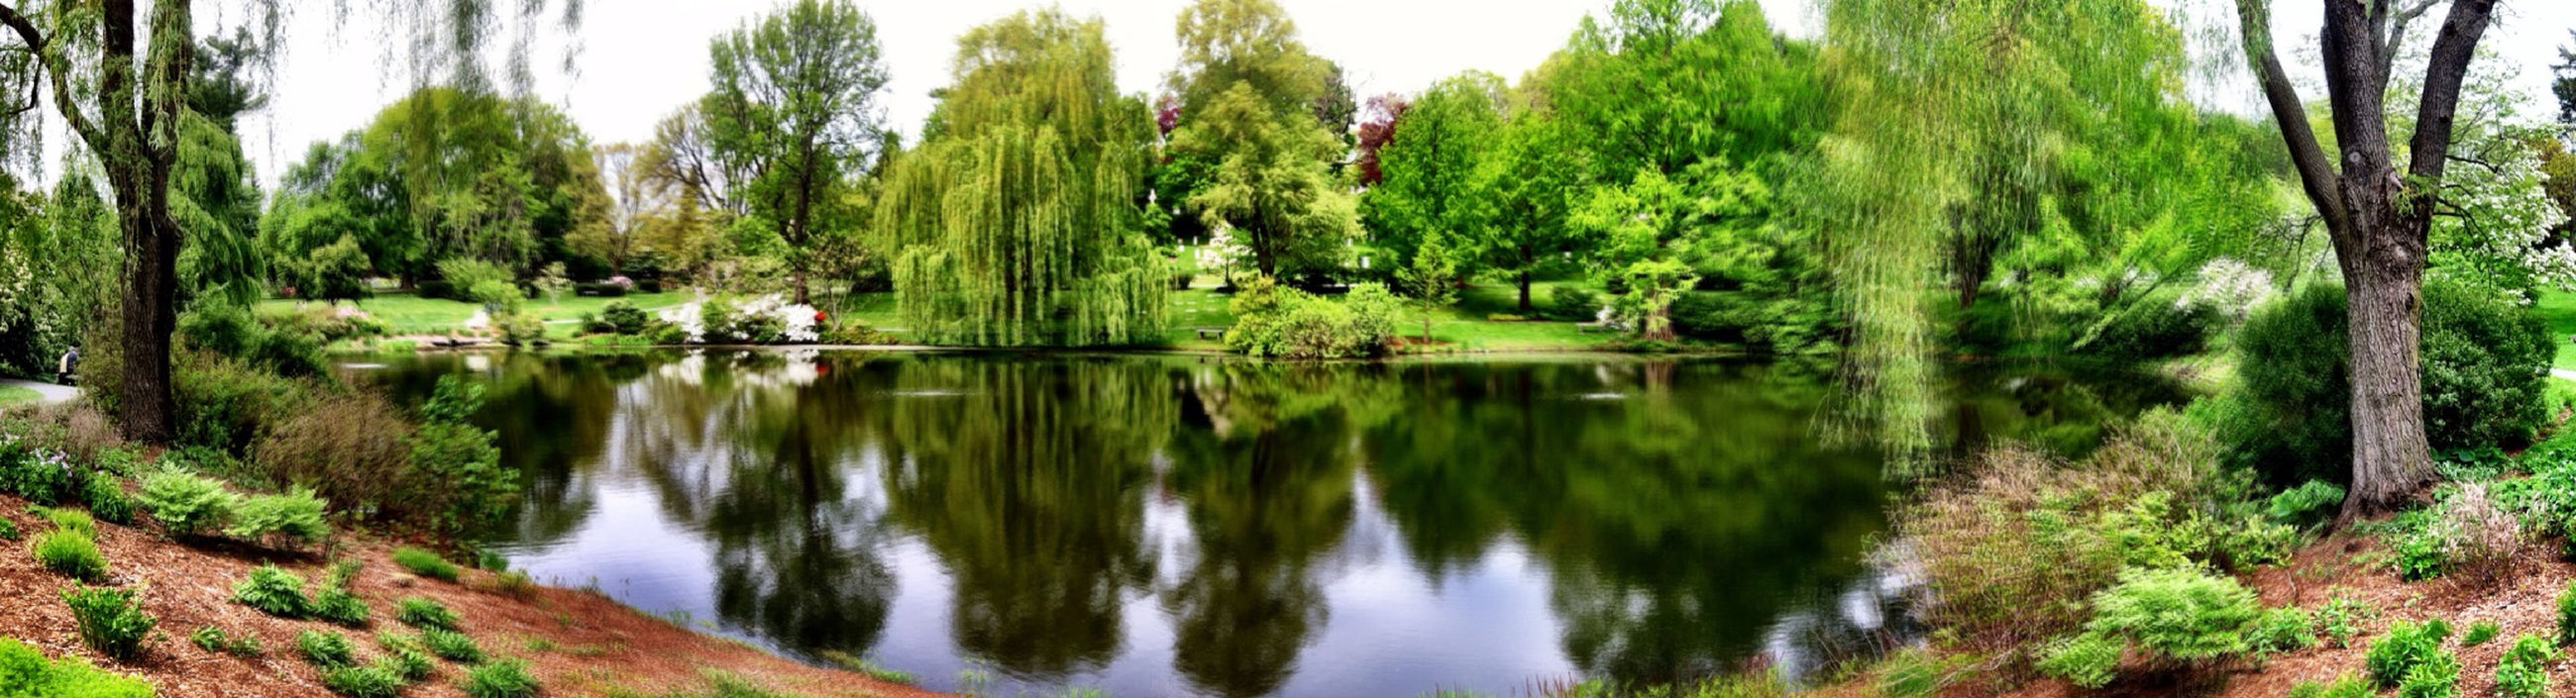 tree, water, reflection, tranquility, tranquil scene, scenics, beauty in nature, lake, nature, growth, forest, idyllic, green color, standing water, plant, day, non-urban scene, calm, river, no people